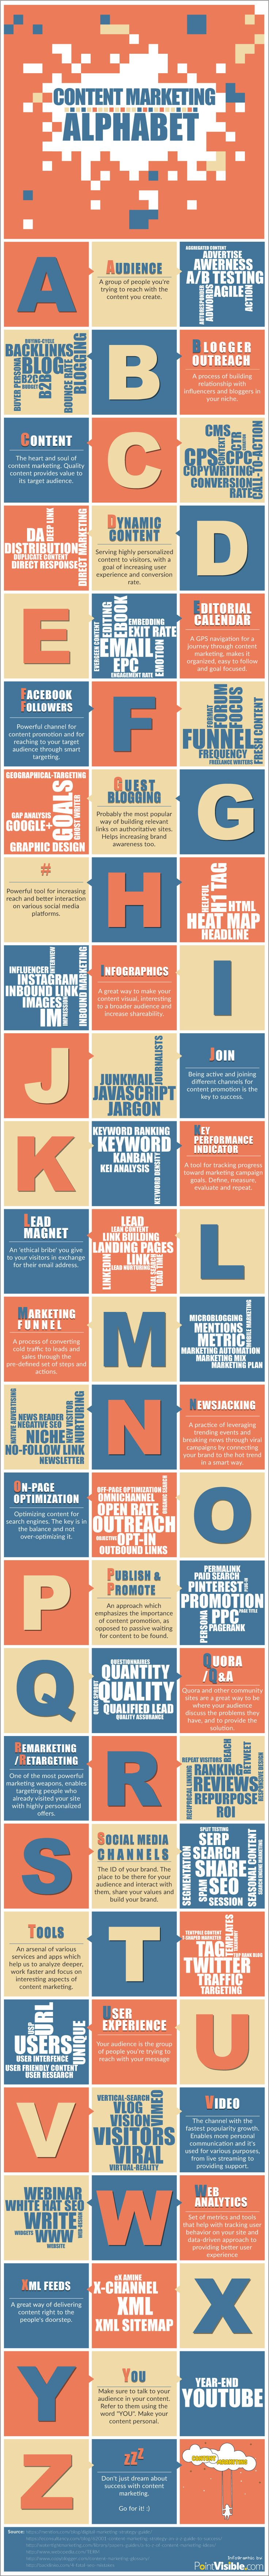 The Content Marketing Alphabet: An A-Z of Terms You Need to Know [Infographic]